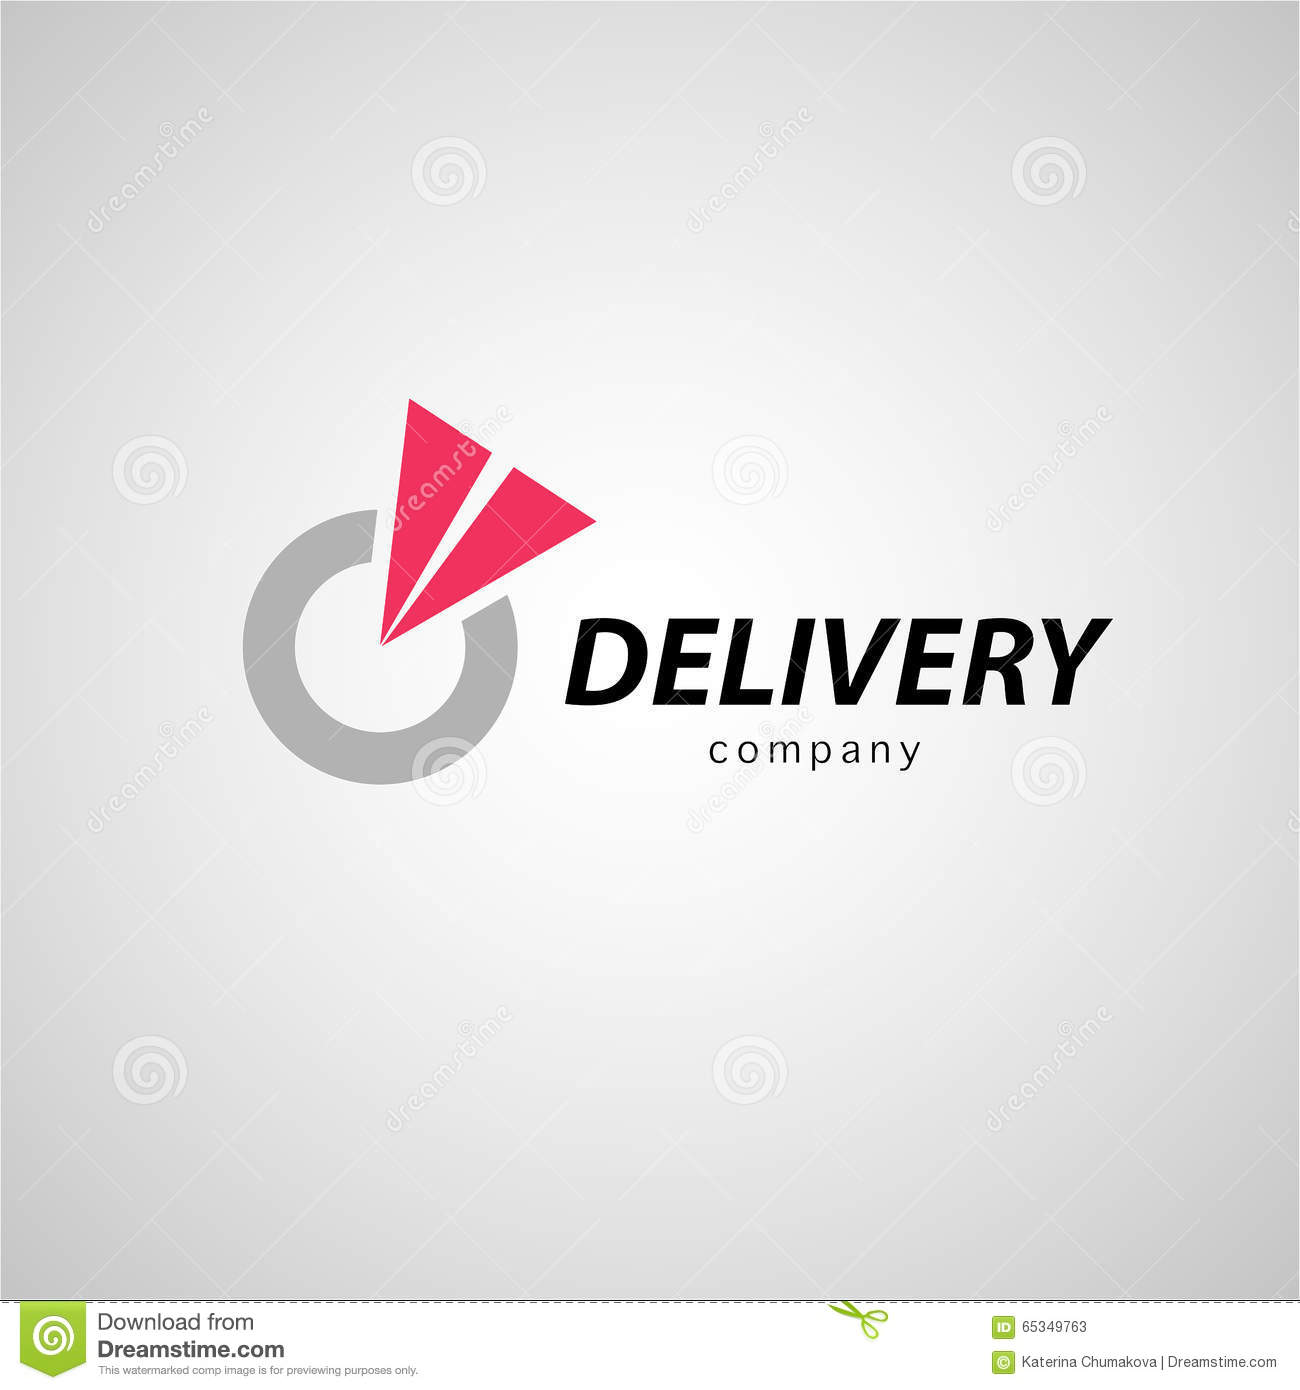 vector flat logo template for logistics and delivery